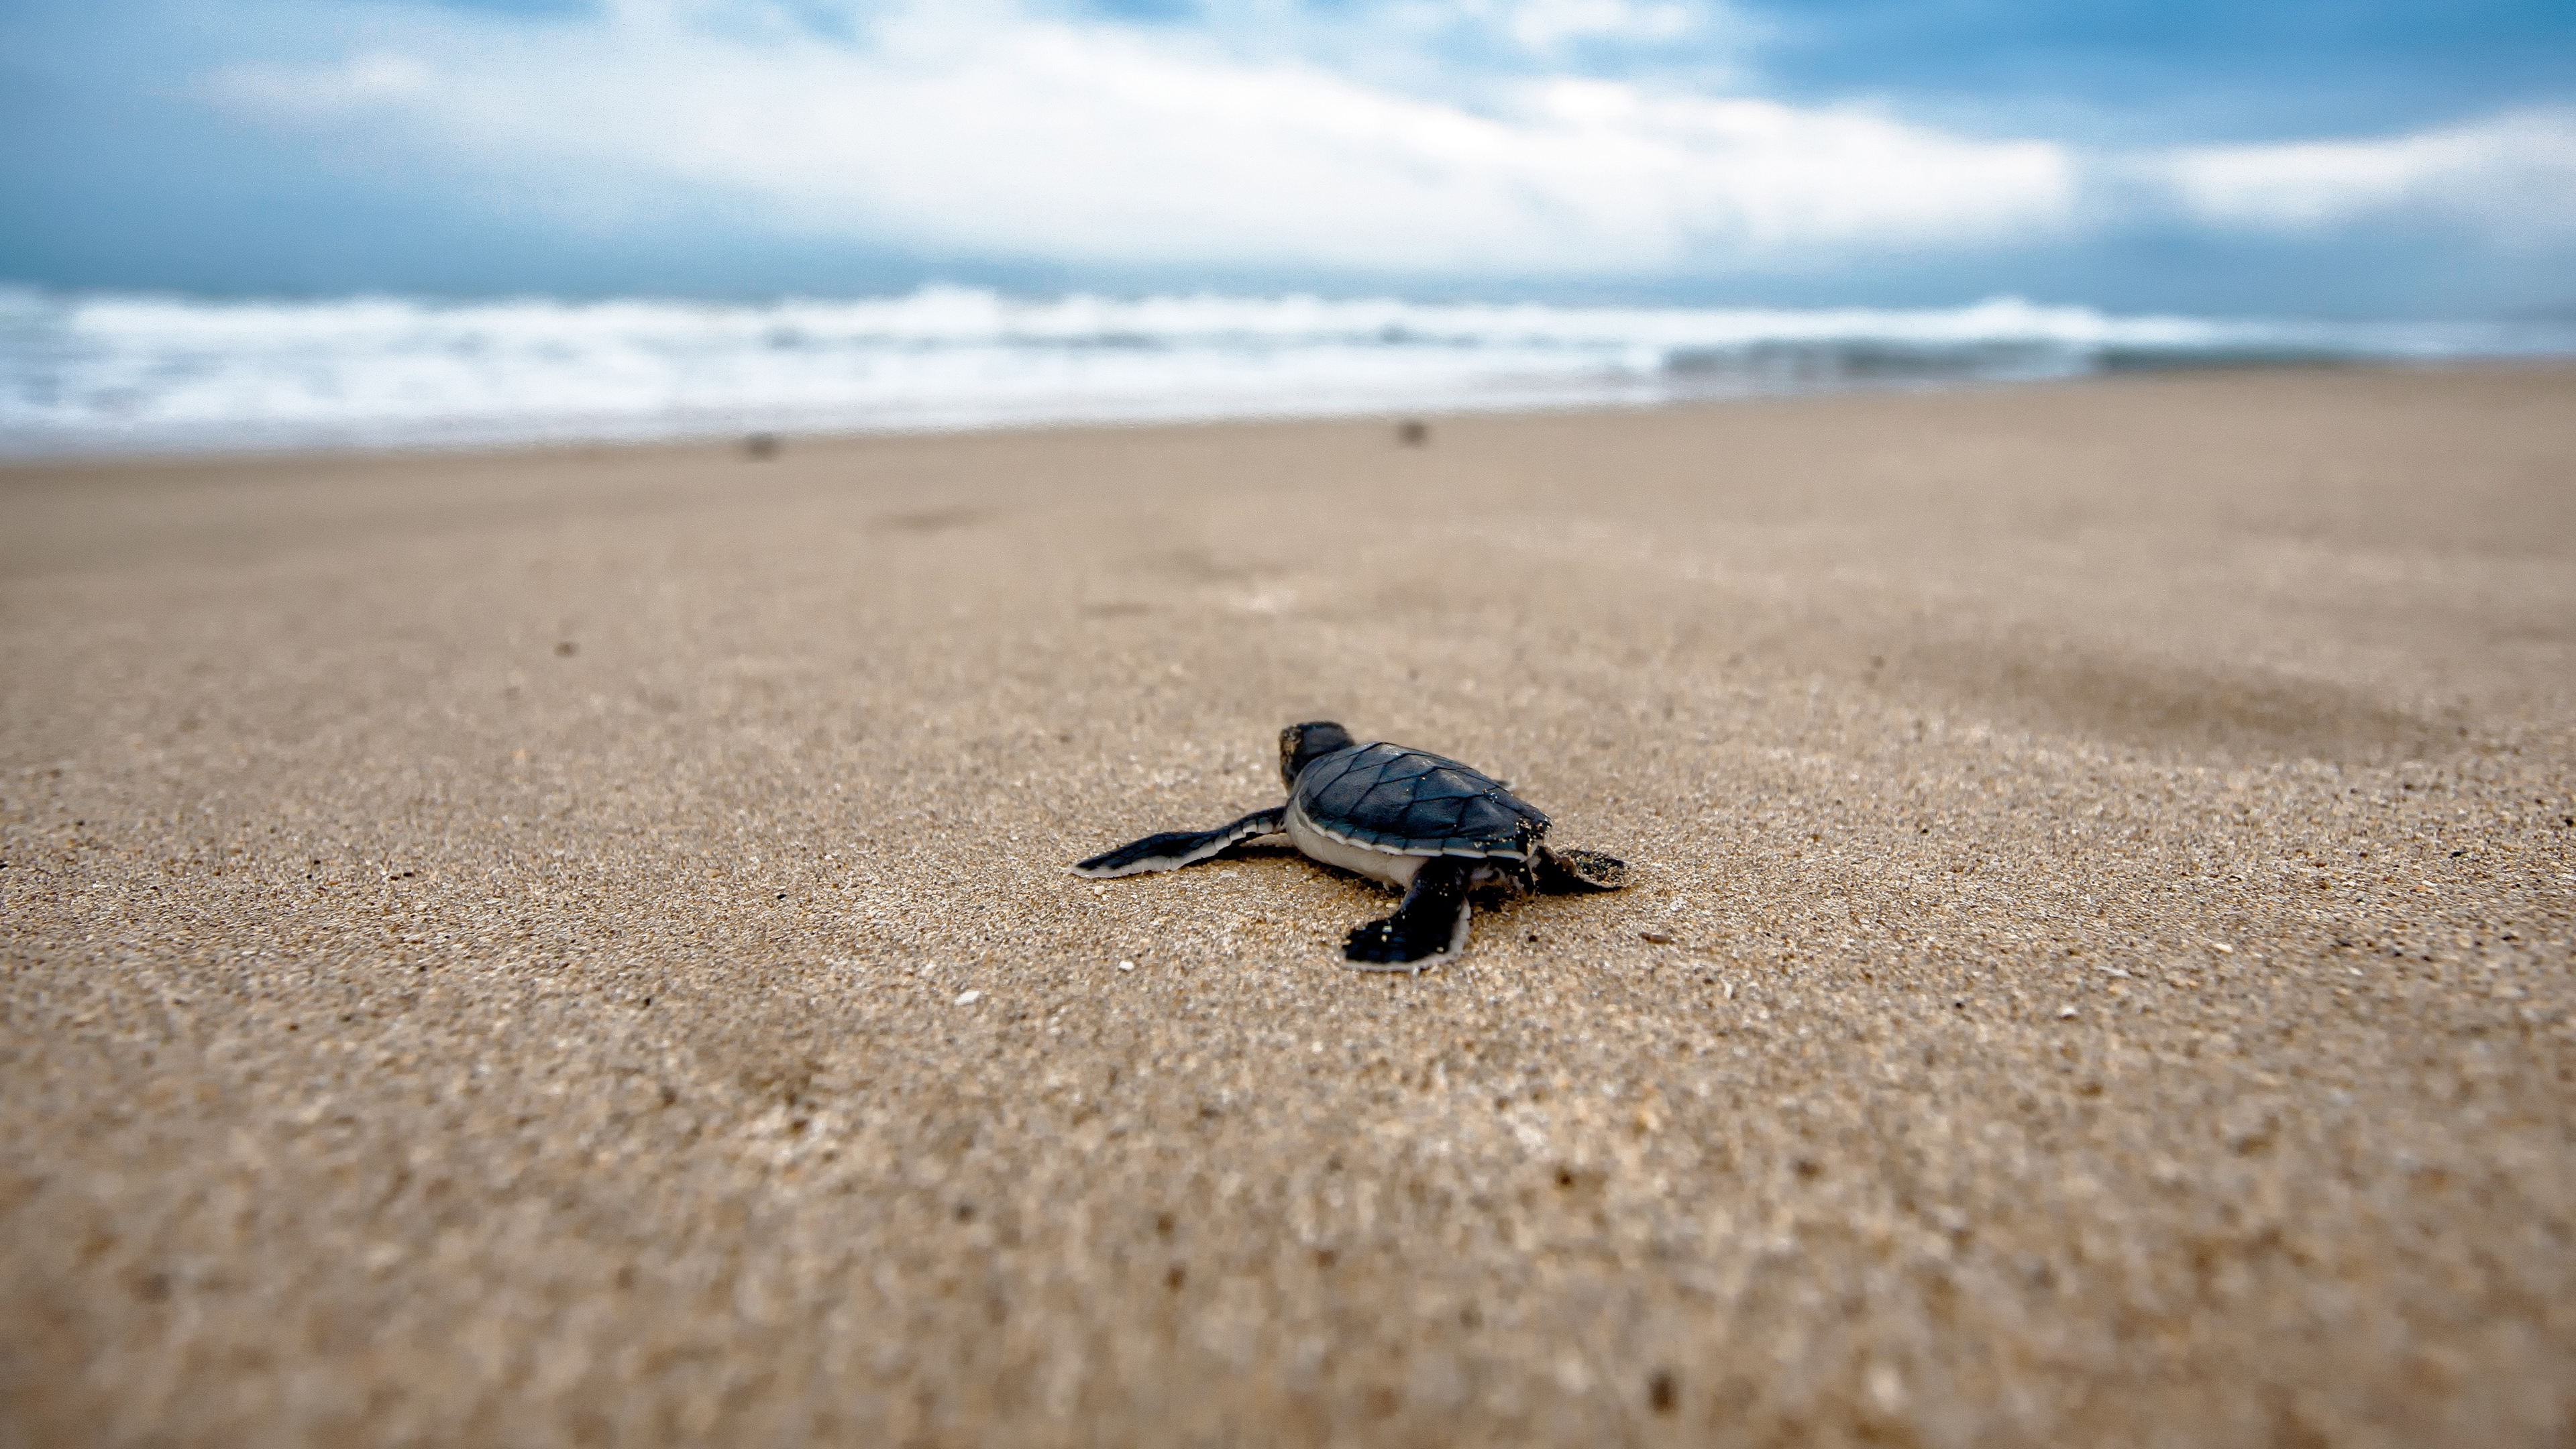 Baby Sea Turtle ChromeBook Wallpaper size 3840 x 2160 Baby Sea Turtle ChromeBook Wallpaper size 3840 x 2160